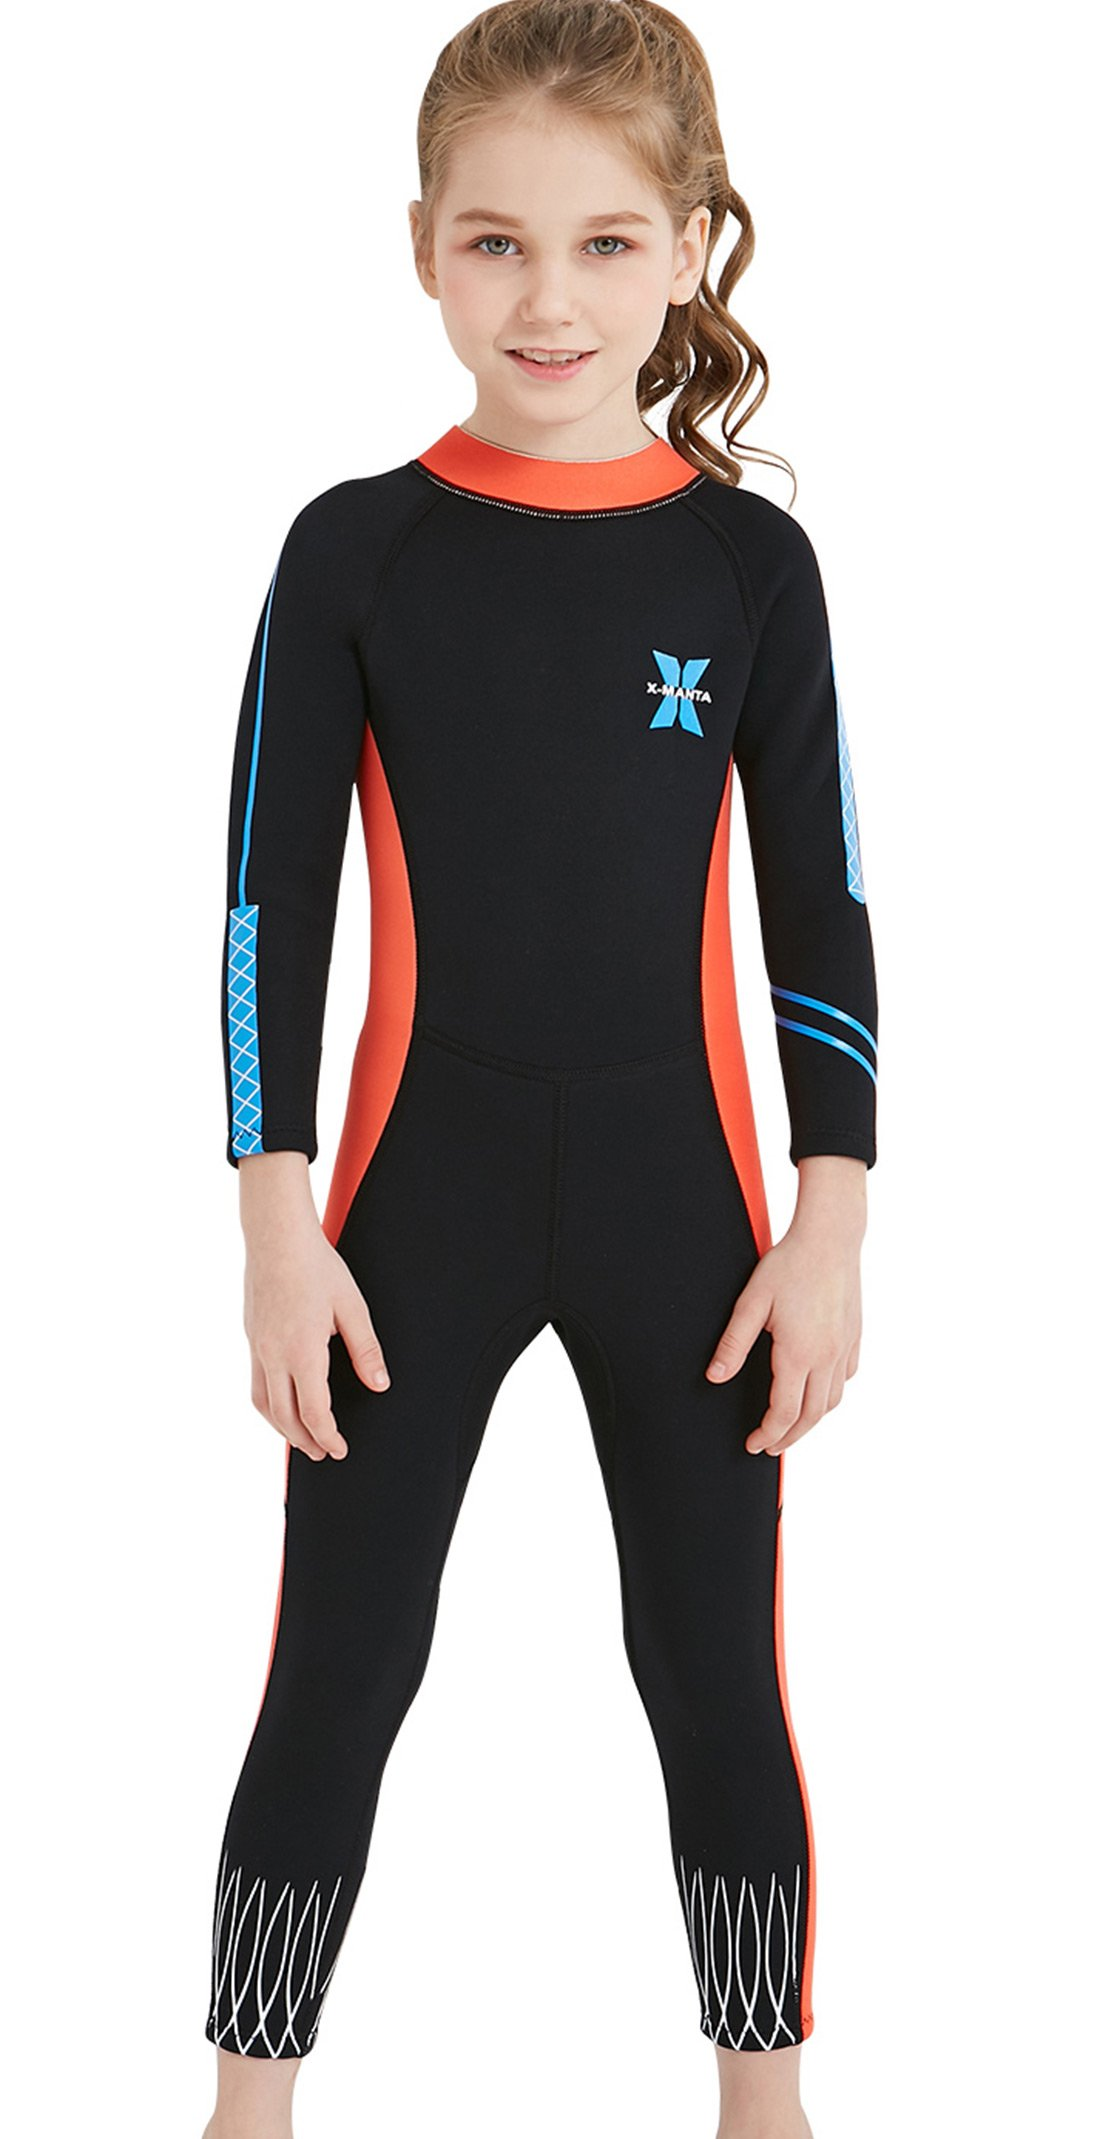 Girls Long Sleeve Swimsuit One Piece UV Sun Protection Full Suit Thermal Diving Wetsuit Swimwear Black L